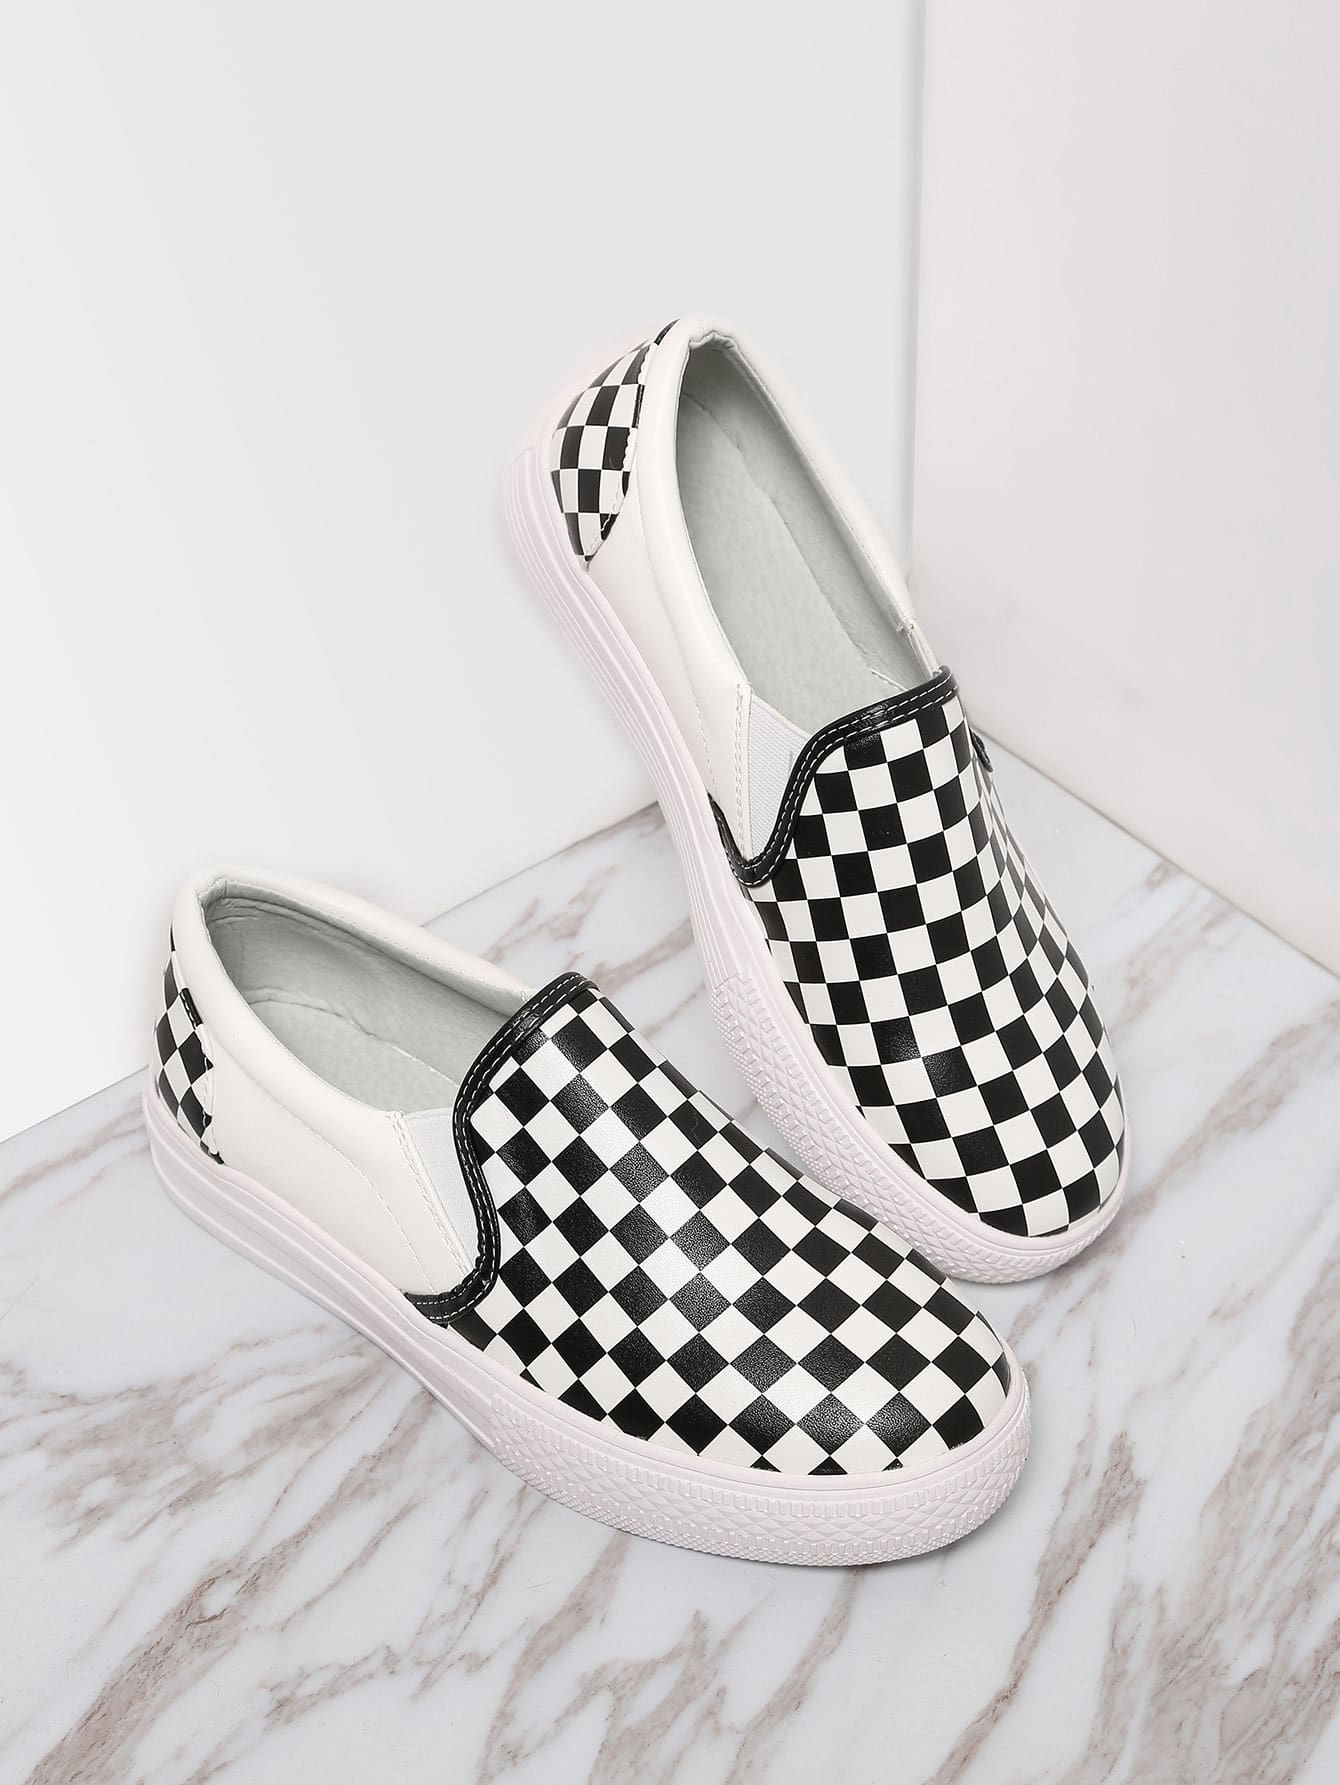 Classic Damier Slip On Low Top Sneakers shoes161026805